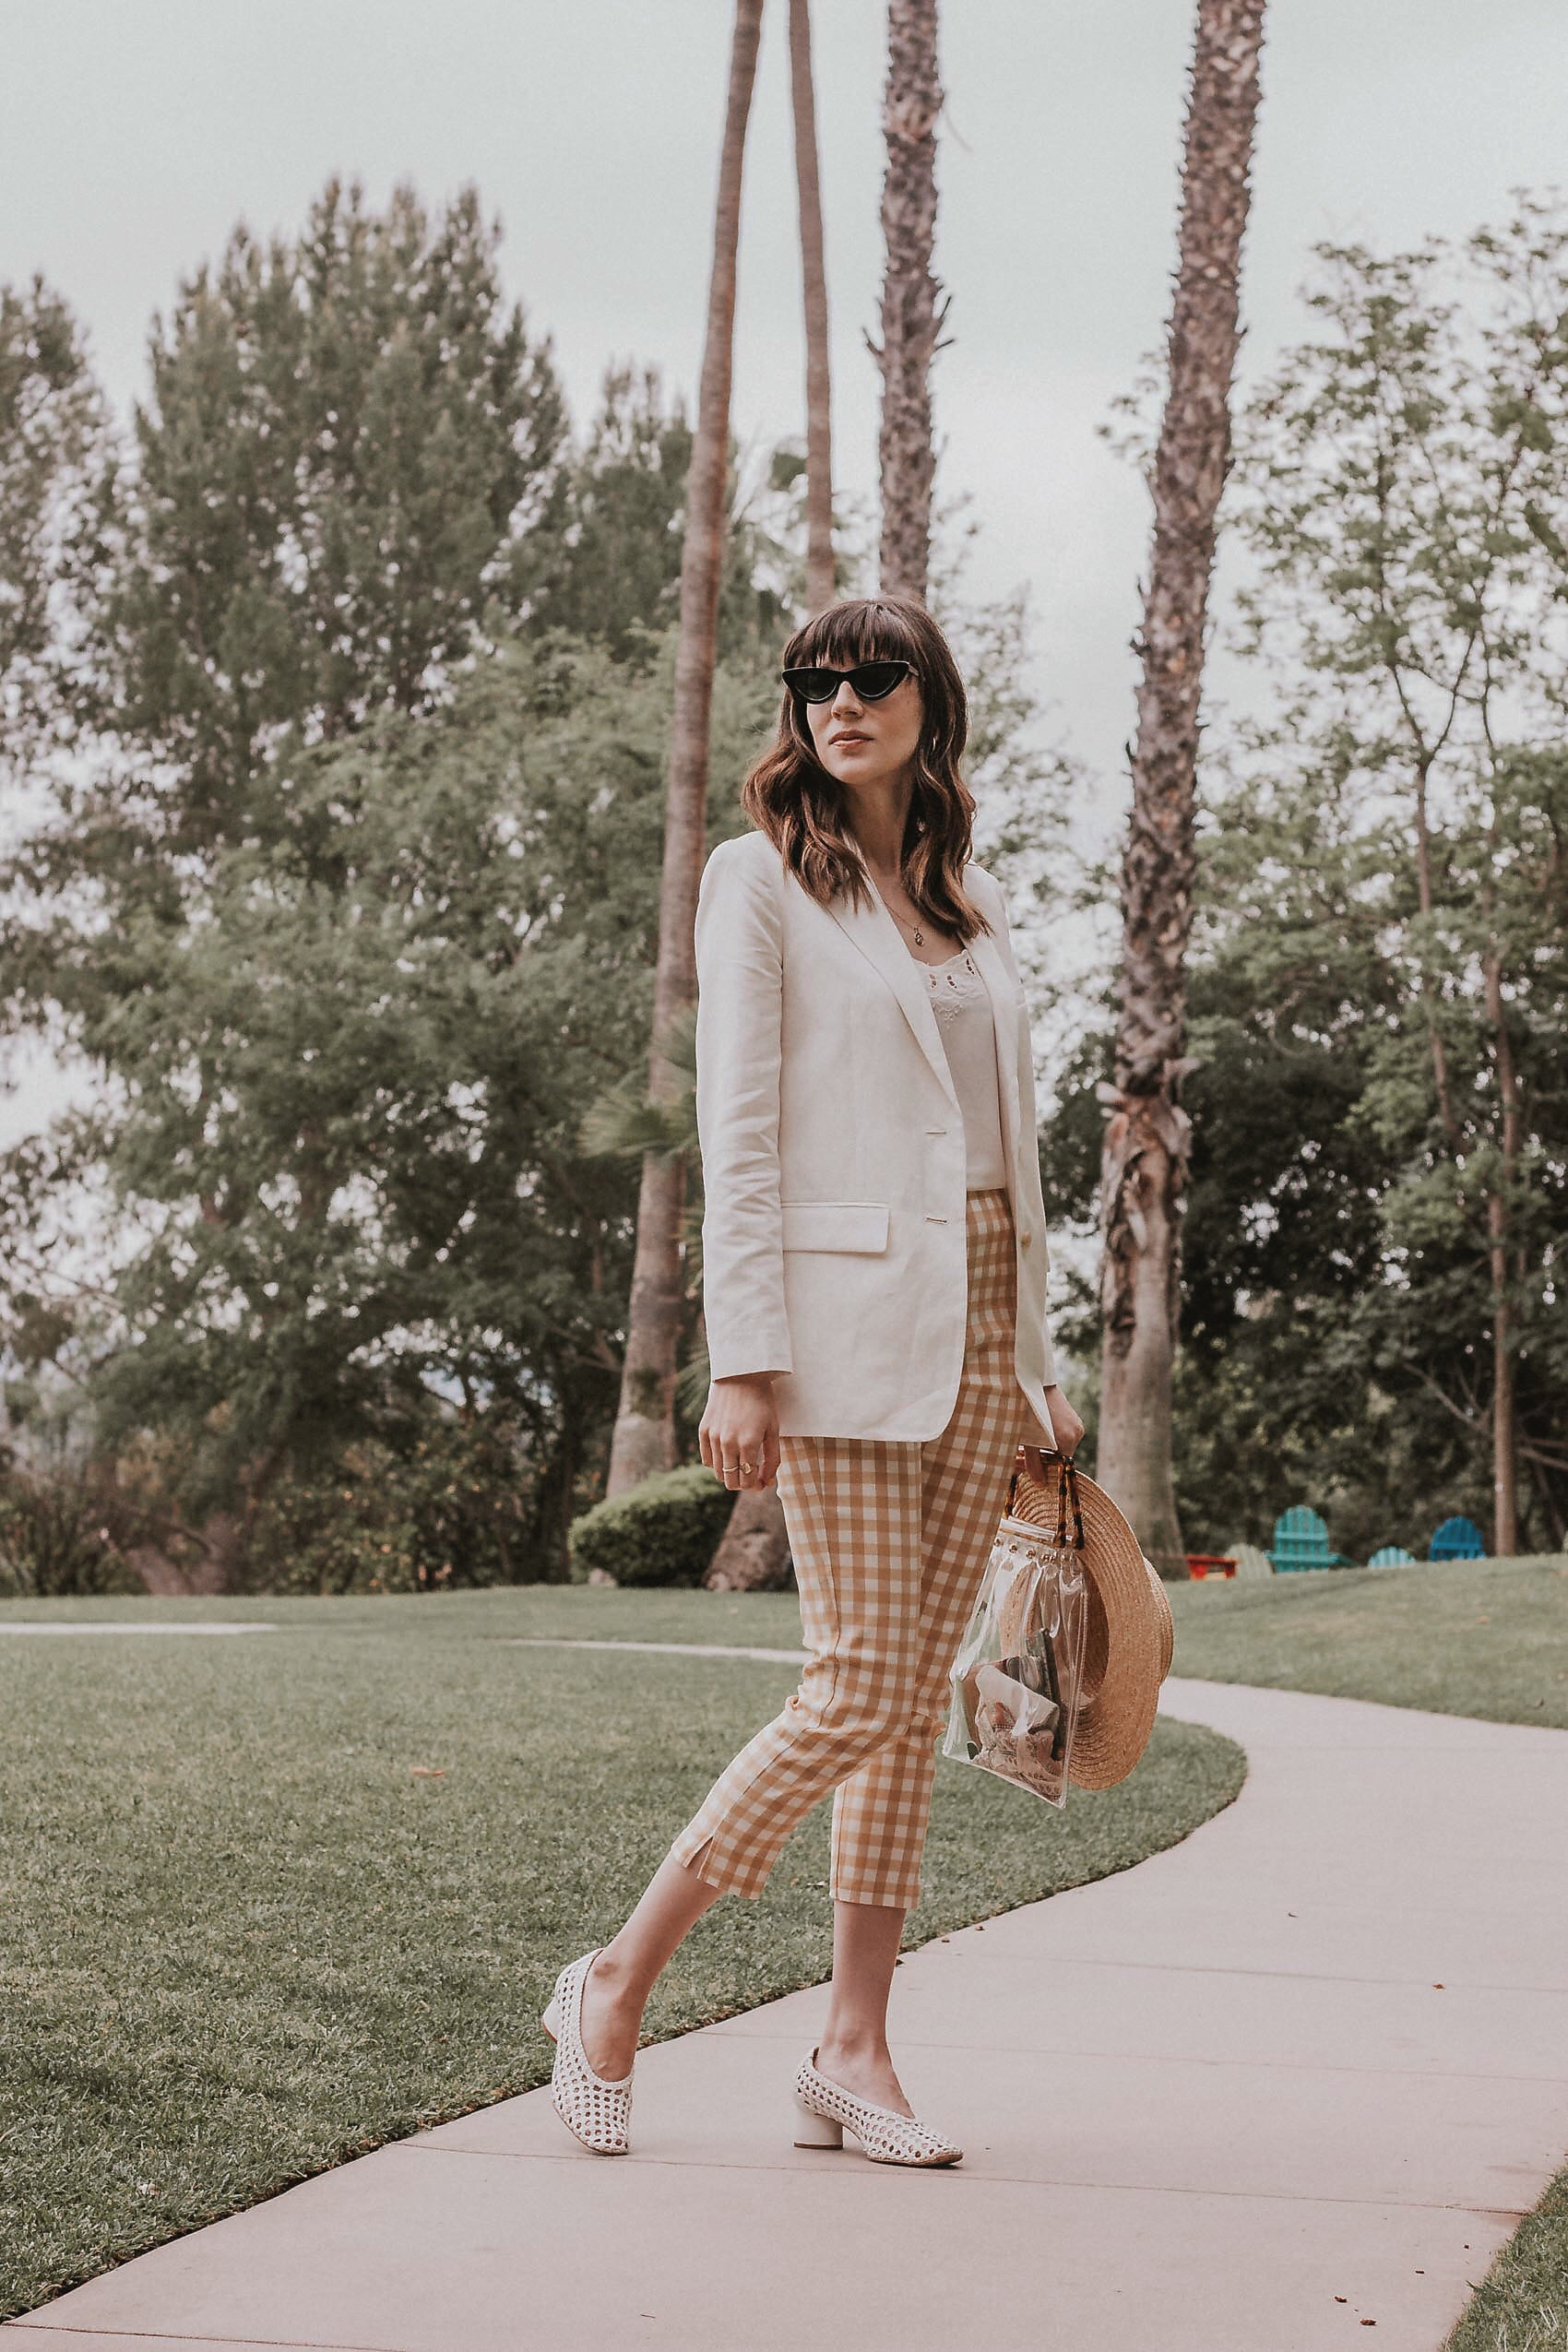 LA Fashion Blogger wearing WWW Collection pants from Target and Everlane Linen Blazer